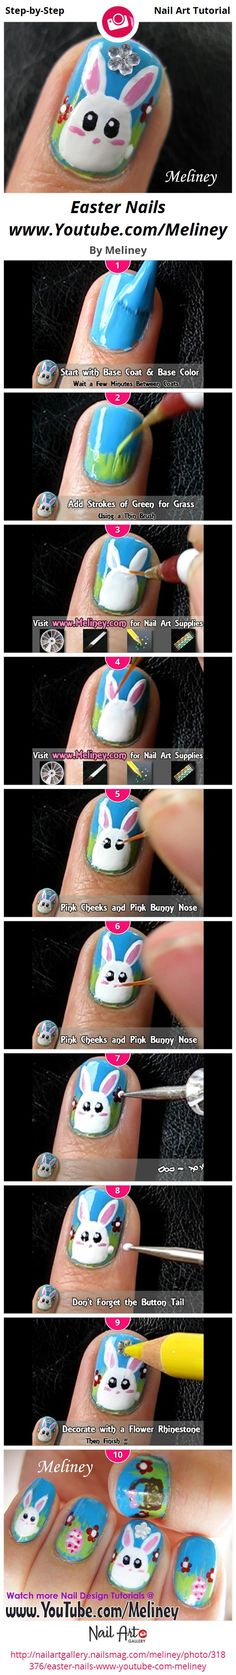 Easter Nails www.Youtube.com/Meliney - Nail Art Gallery Step-by-Step Tutorial Photos